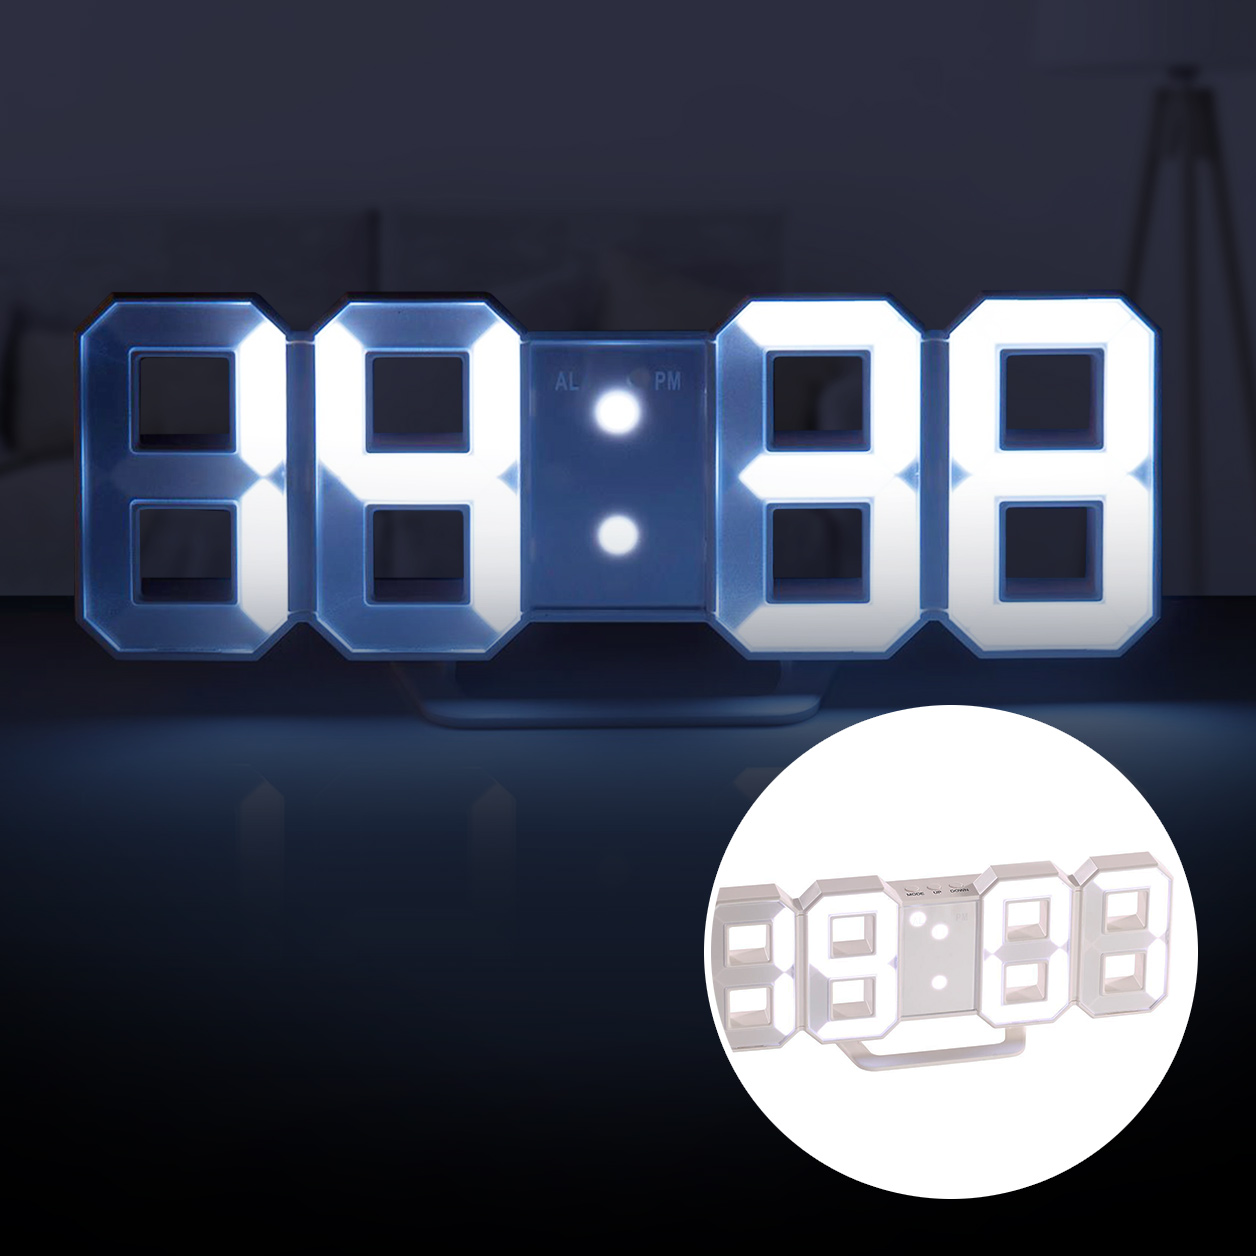 Led Wanduhren 3d Digitaluhr Mit Wecker 2in1 Led Wanduhr Tischuhr Digital